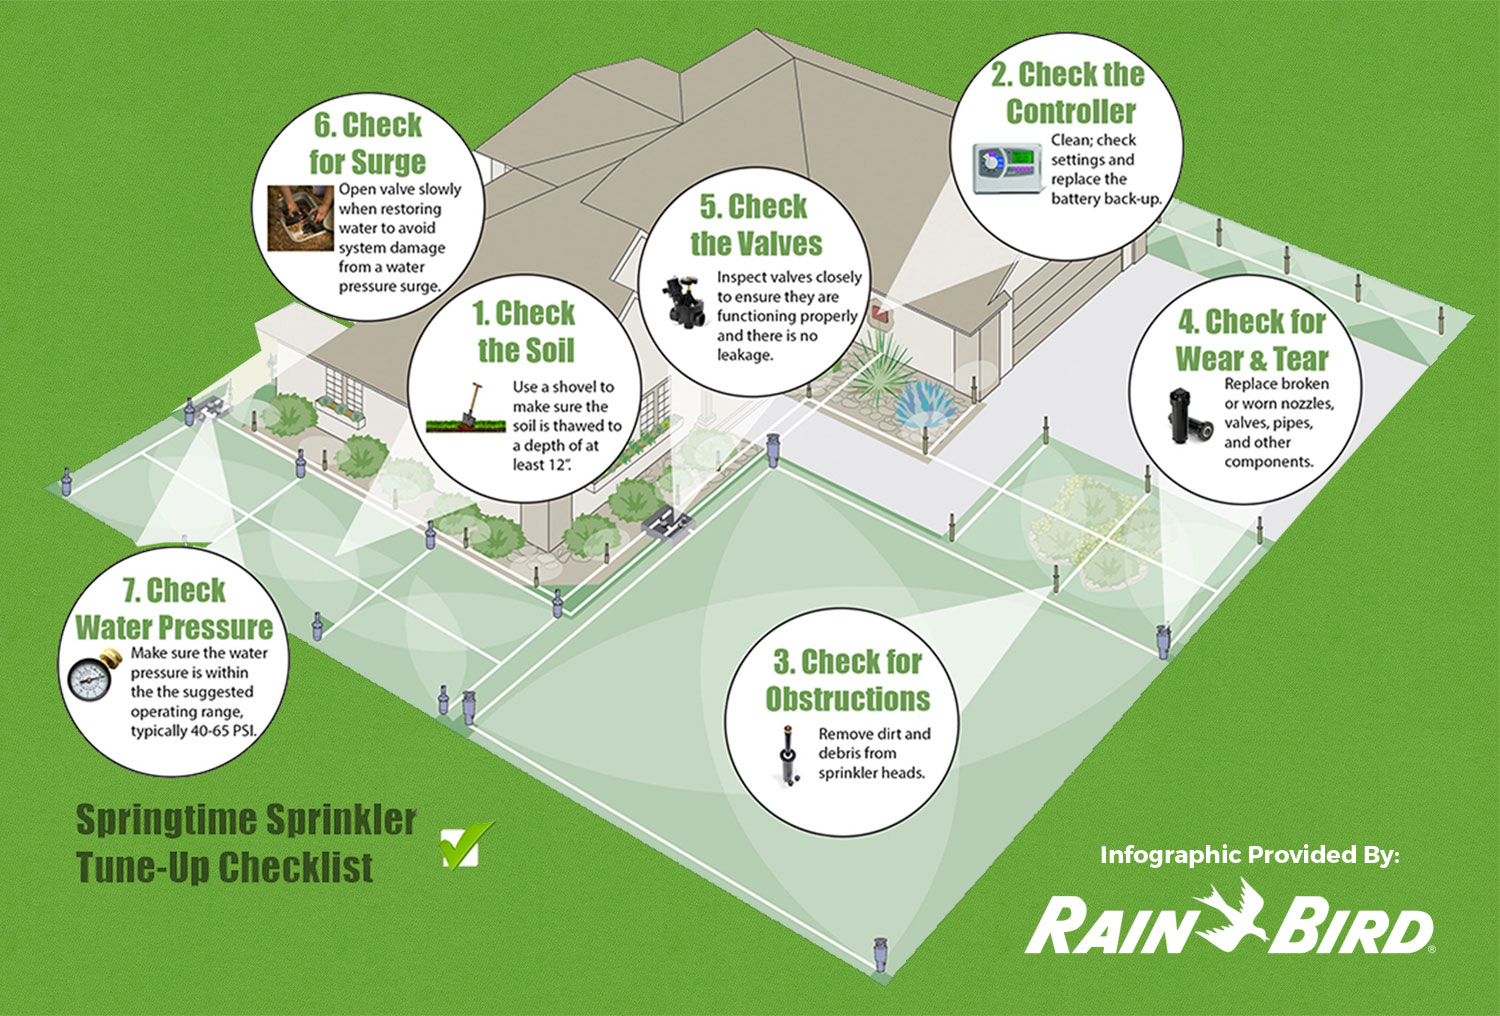 Sprinkler System Tune-Up Checklist